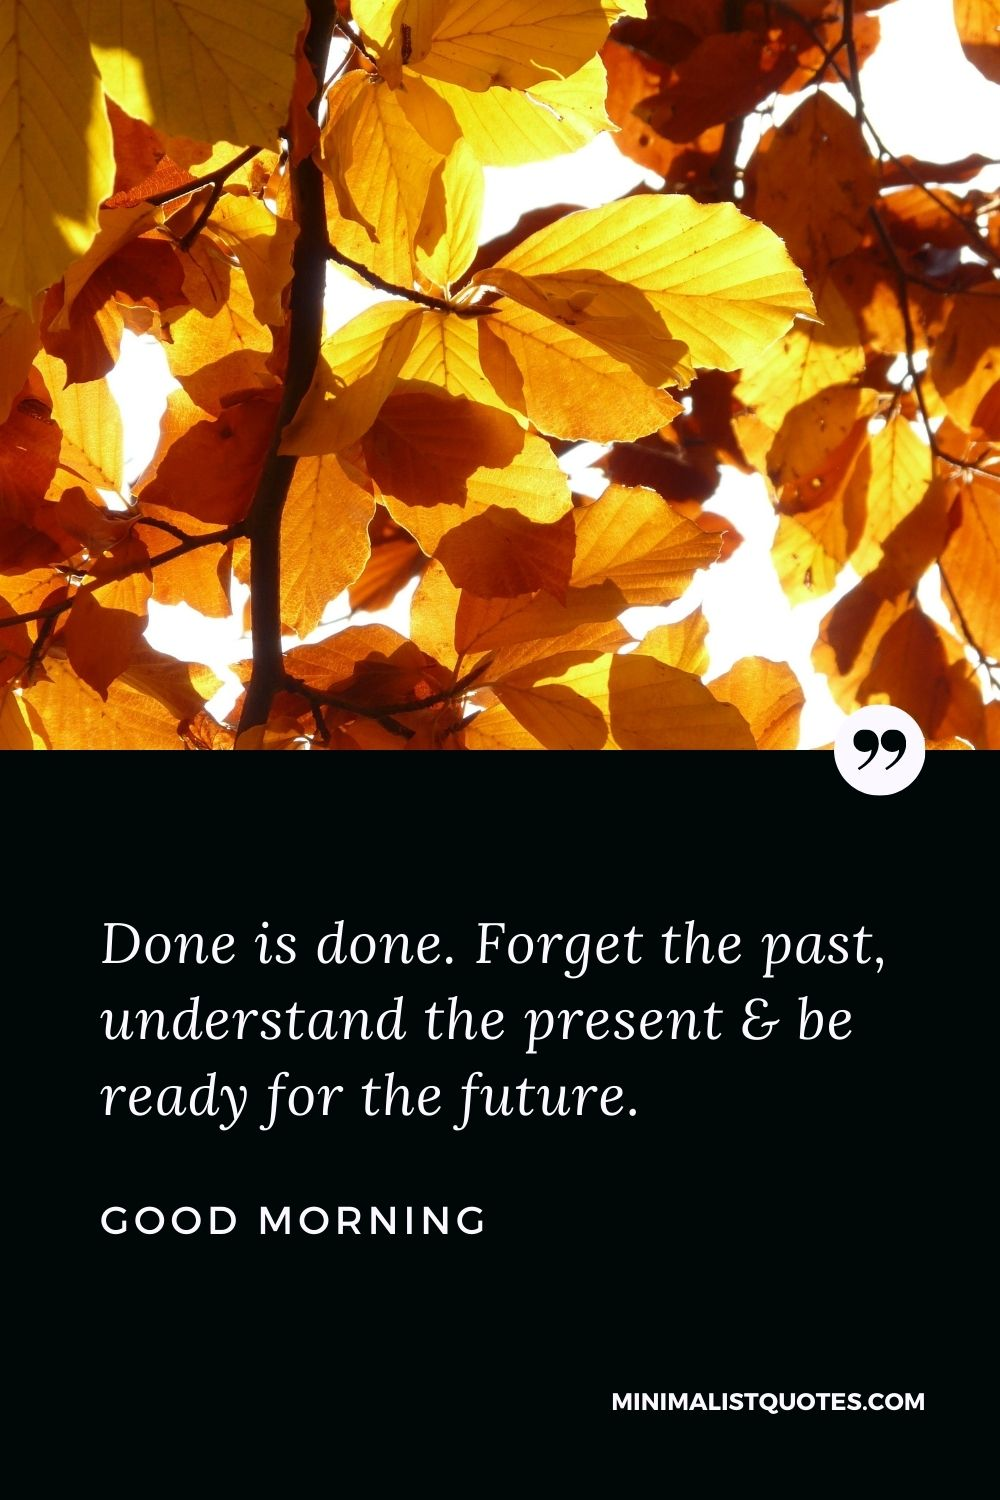 Good Morning Wish & Message With Image: Done is done. Forget the past, understand the present & be ready for the future.